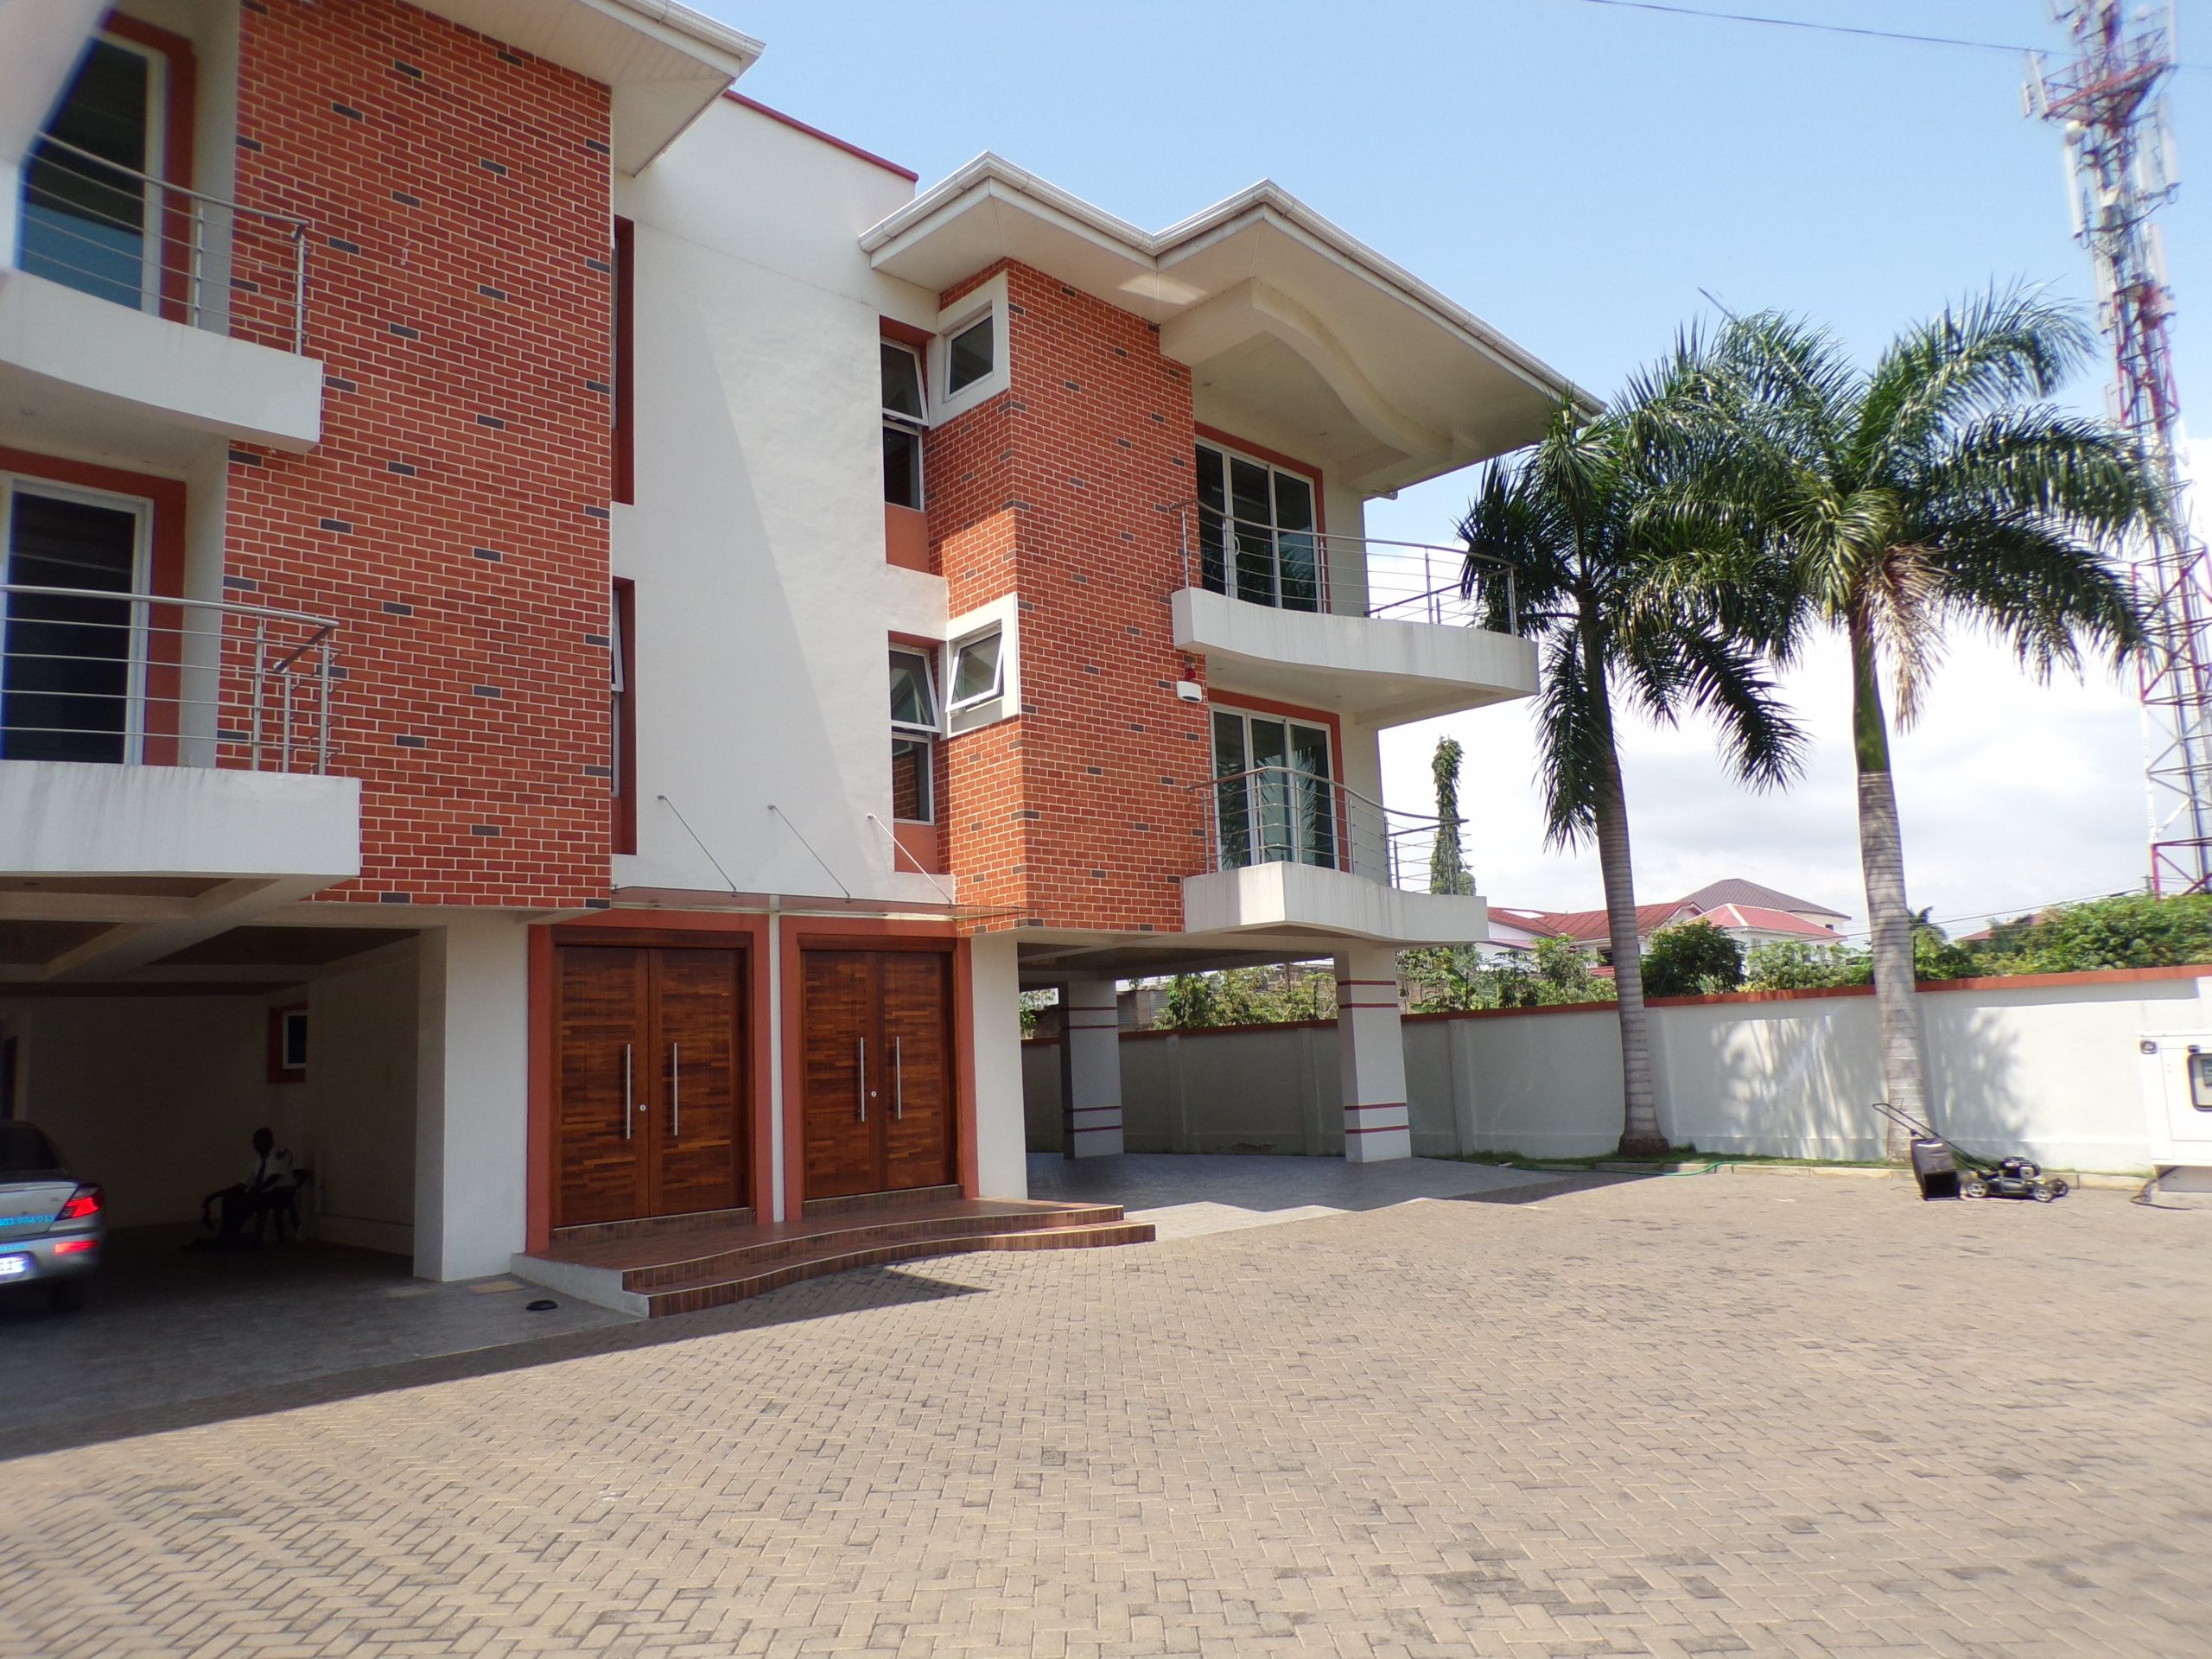 3 bedroom furnished apartment for rent in East Legon.